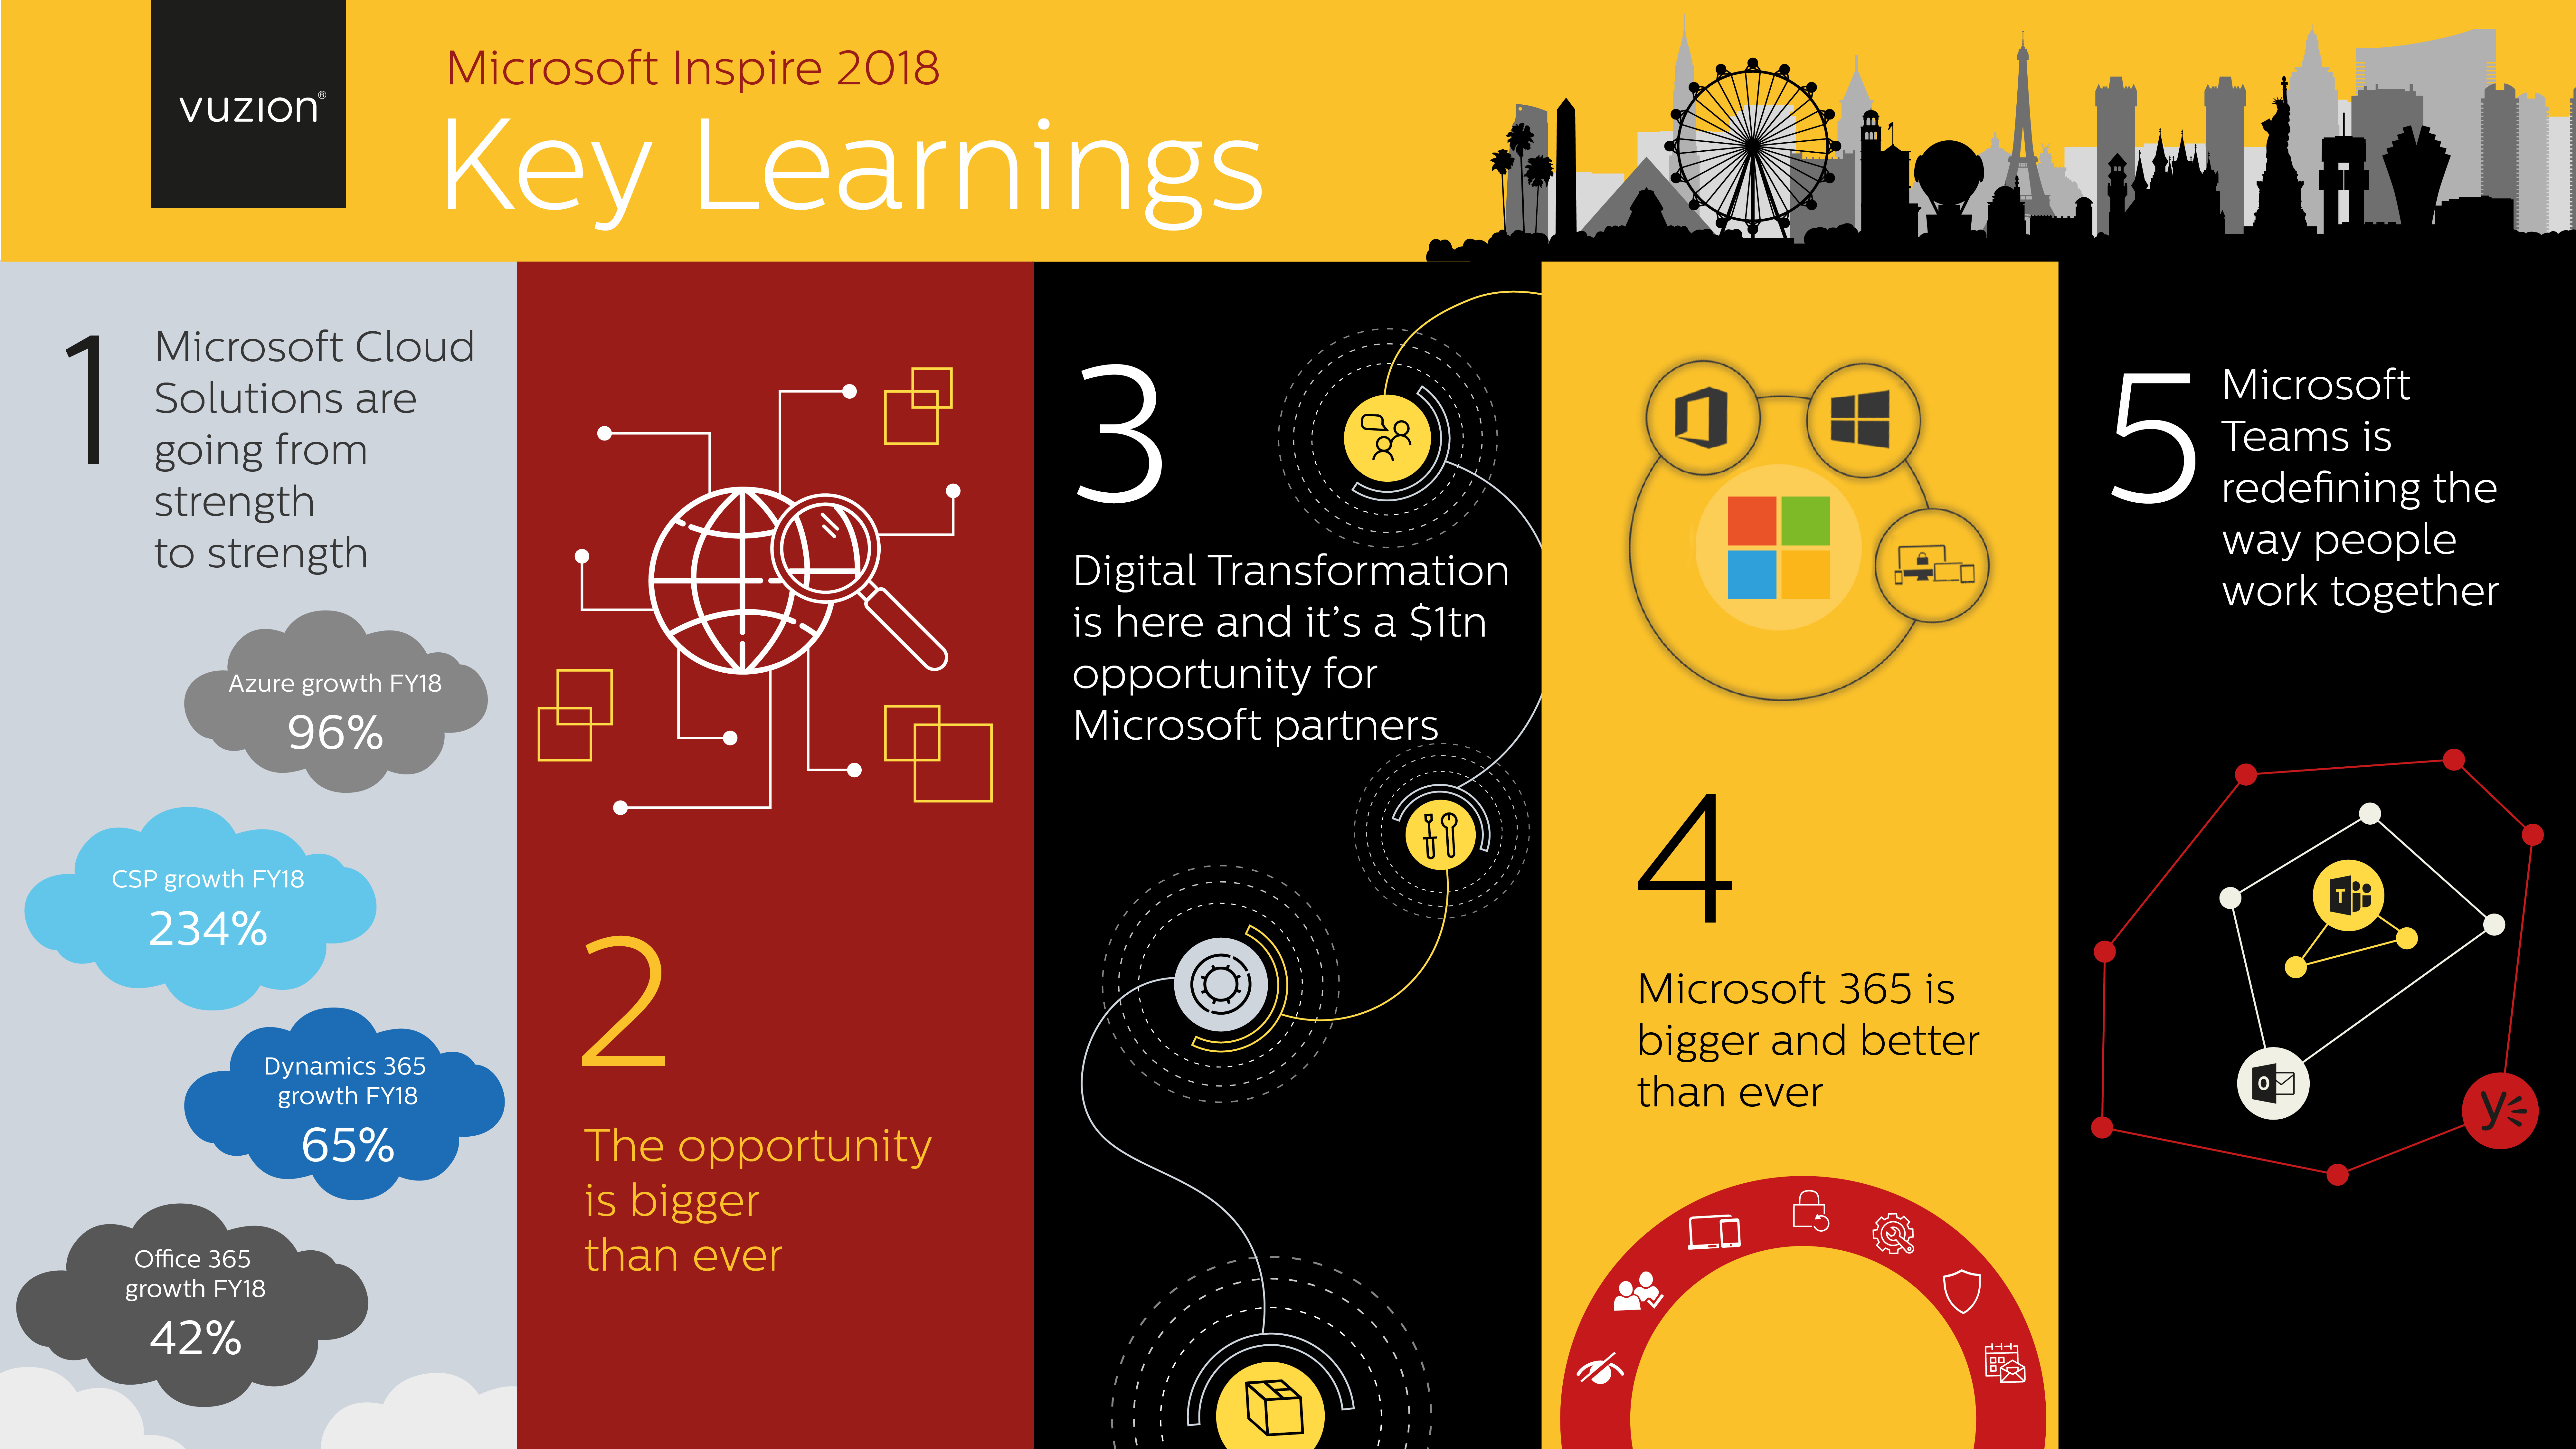 Key Learnings from Microsoft Inspire 2018